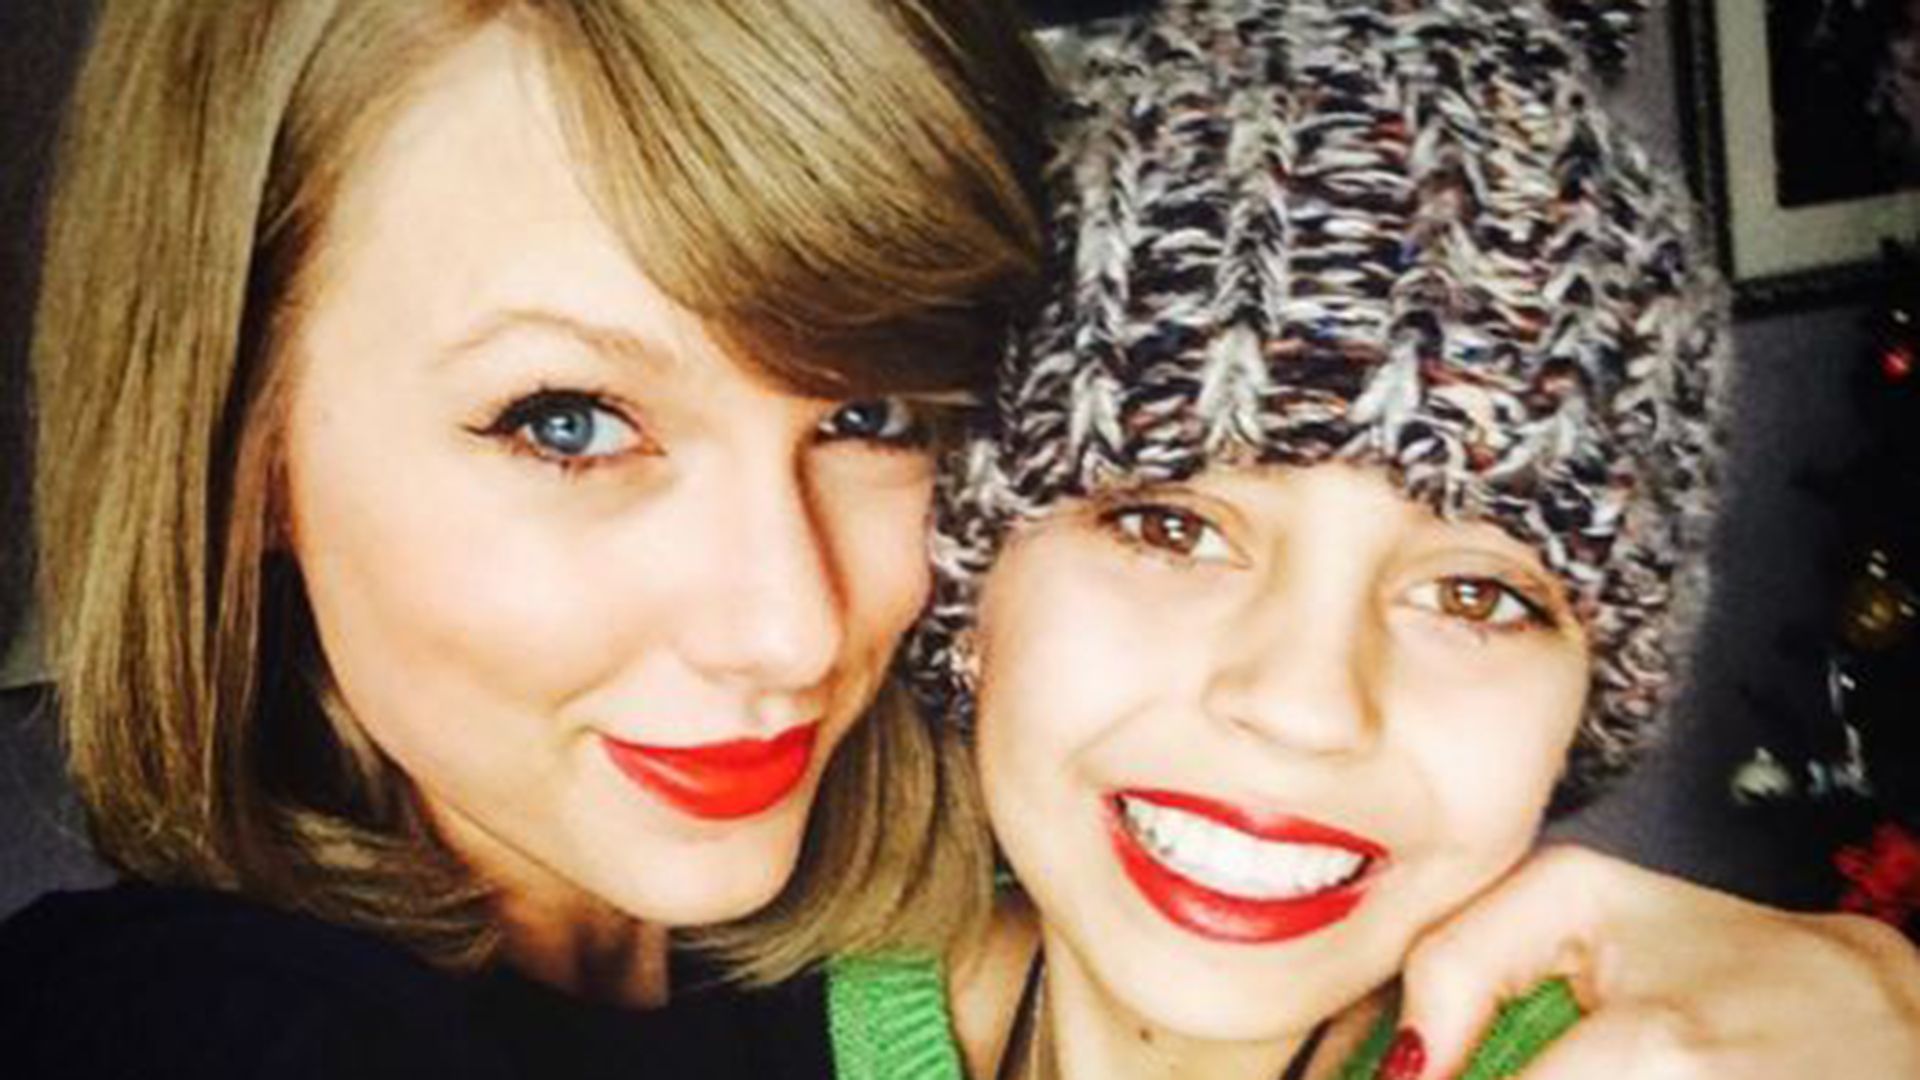 Visit Nbcnews >> 'Best present ever!' Taylor Swift visits young fan with ...